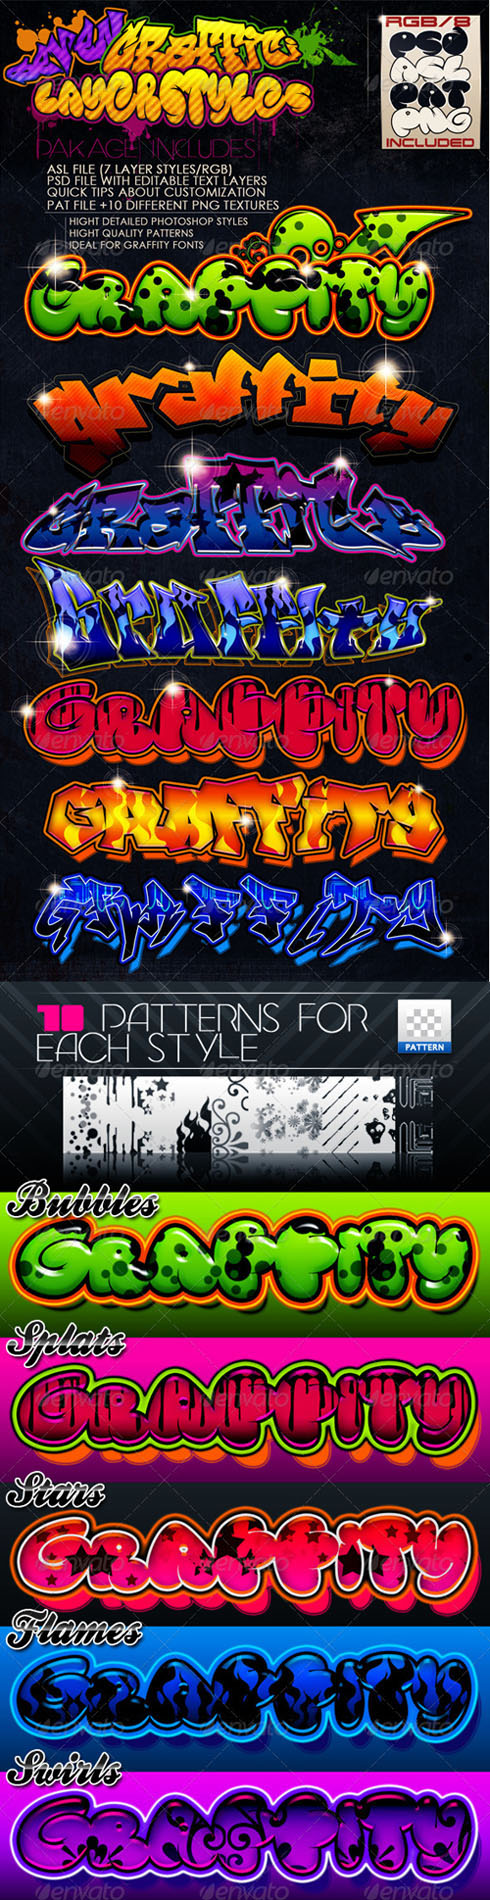 GraphicRiver - Graffiti Styles for Photoshop